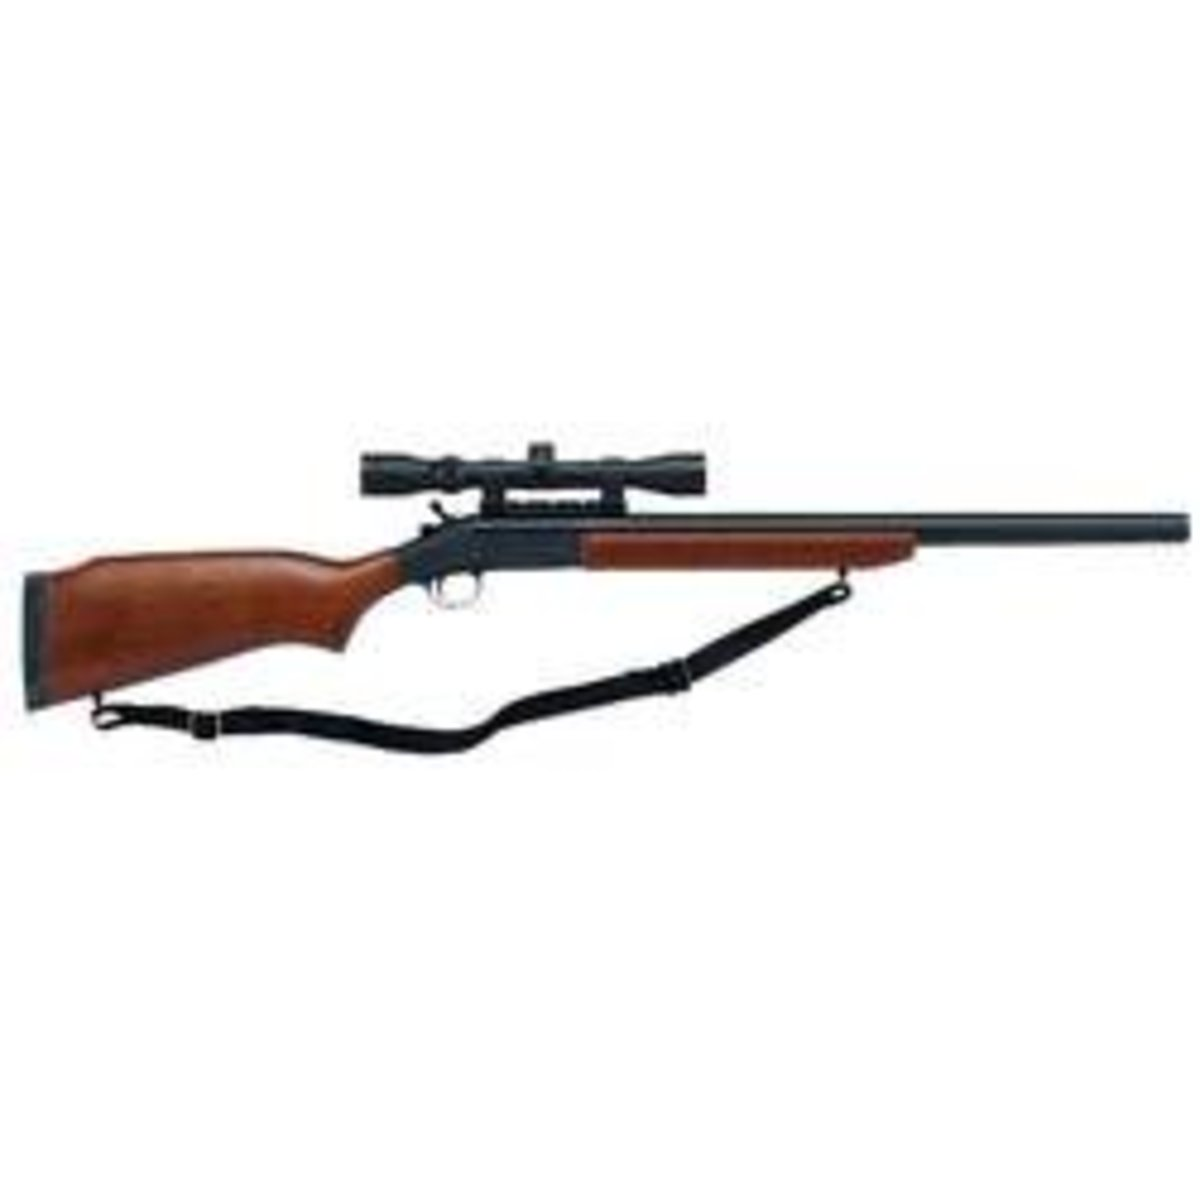 "H&R Ultra Slug Hunter Single Shot Shotgun 12 Gauge 24"" Rifled Barrel 3"" Chamber Hardwood Stock Blue Barrel 3-9x32mm Scope"